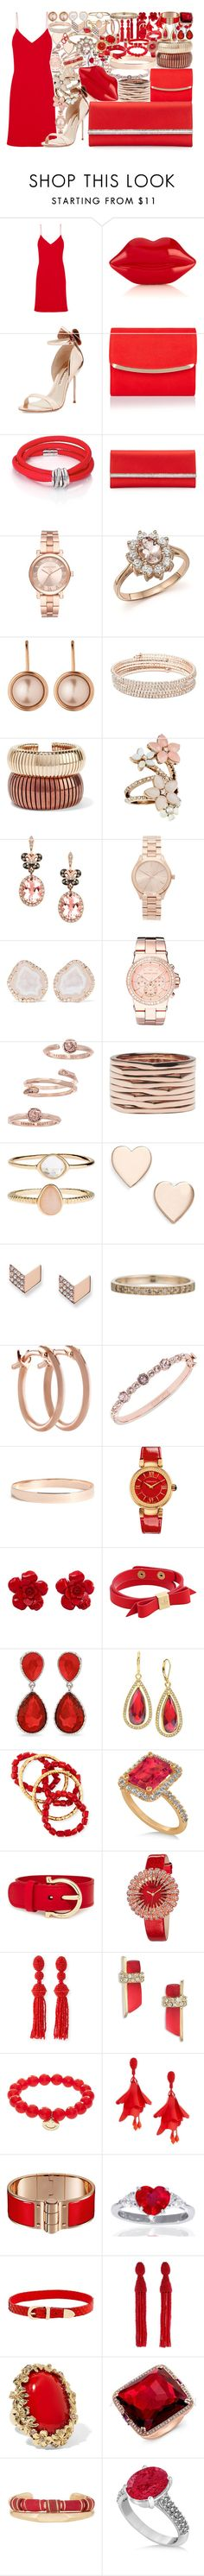 """""""Untitled #3904"""" by brooke-evans12 ❤ liked on Polyvore featuring Calvin Klein Collection, Lulu Guinness, Sophia Webster, Monsoon, de Grisogono, Judith Leiber, Michael Kors, Bloomingdale's, Dyrberg/Kern and Anne Klein"""